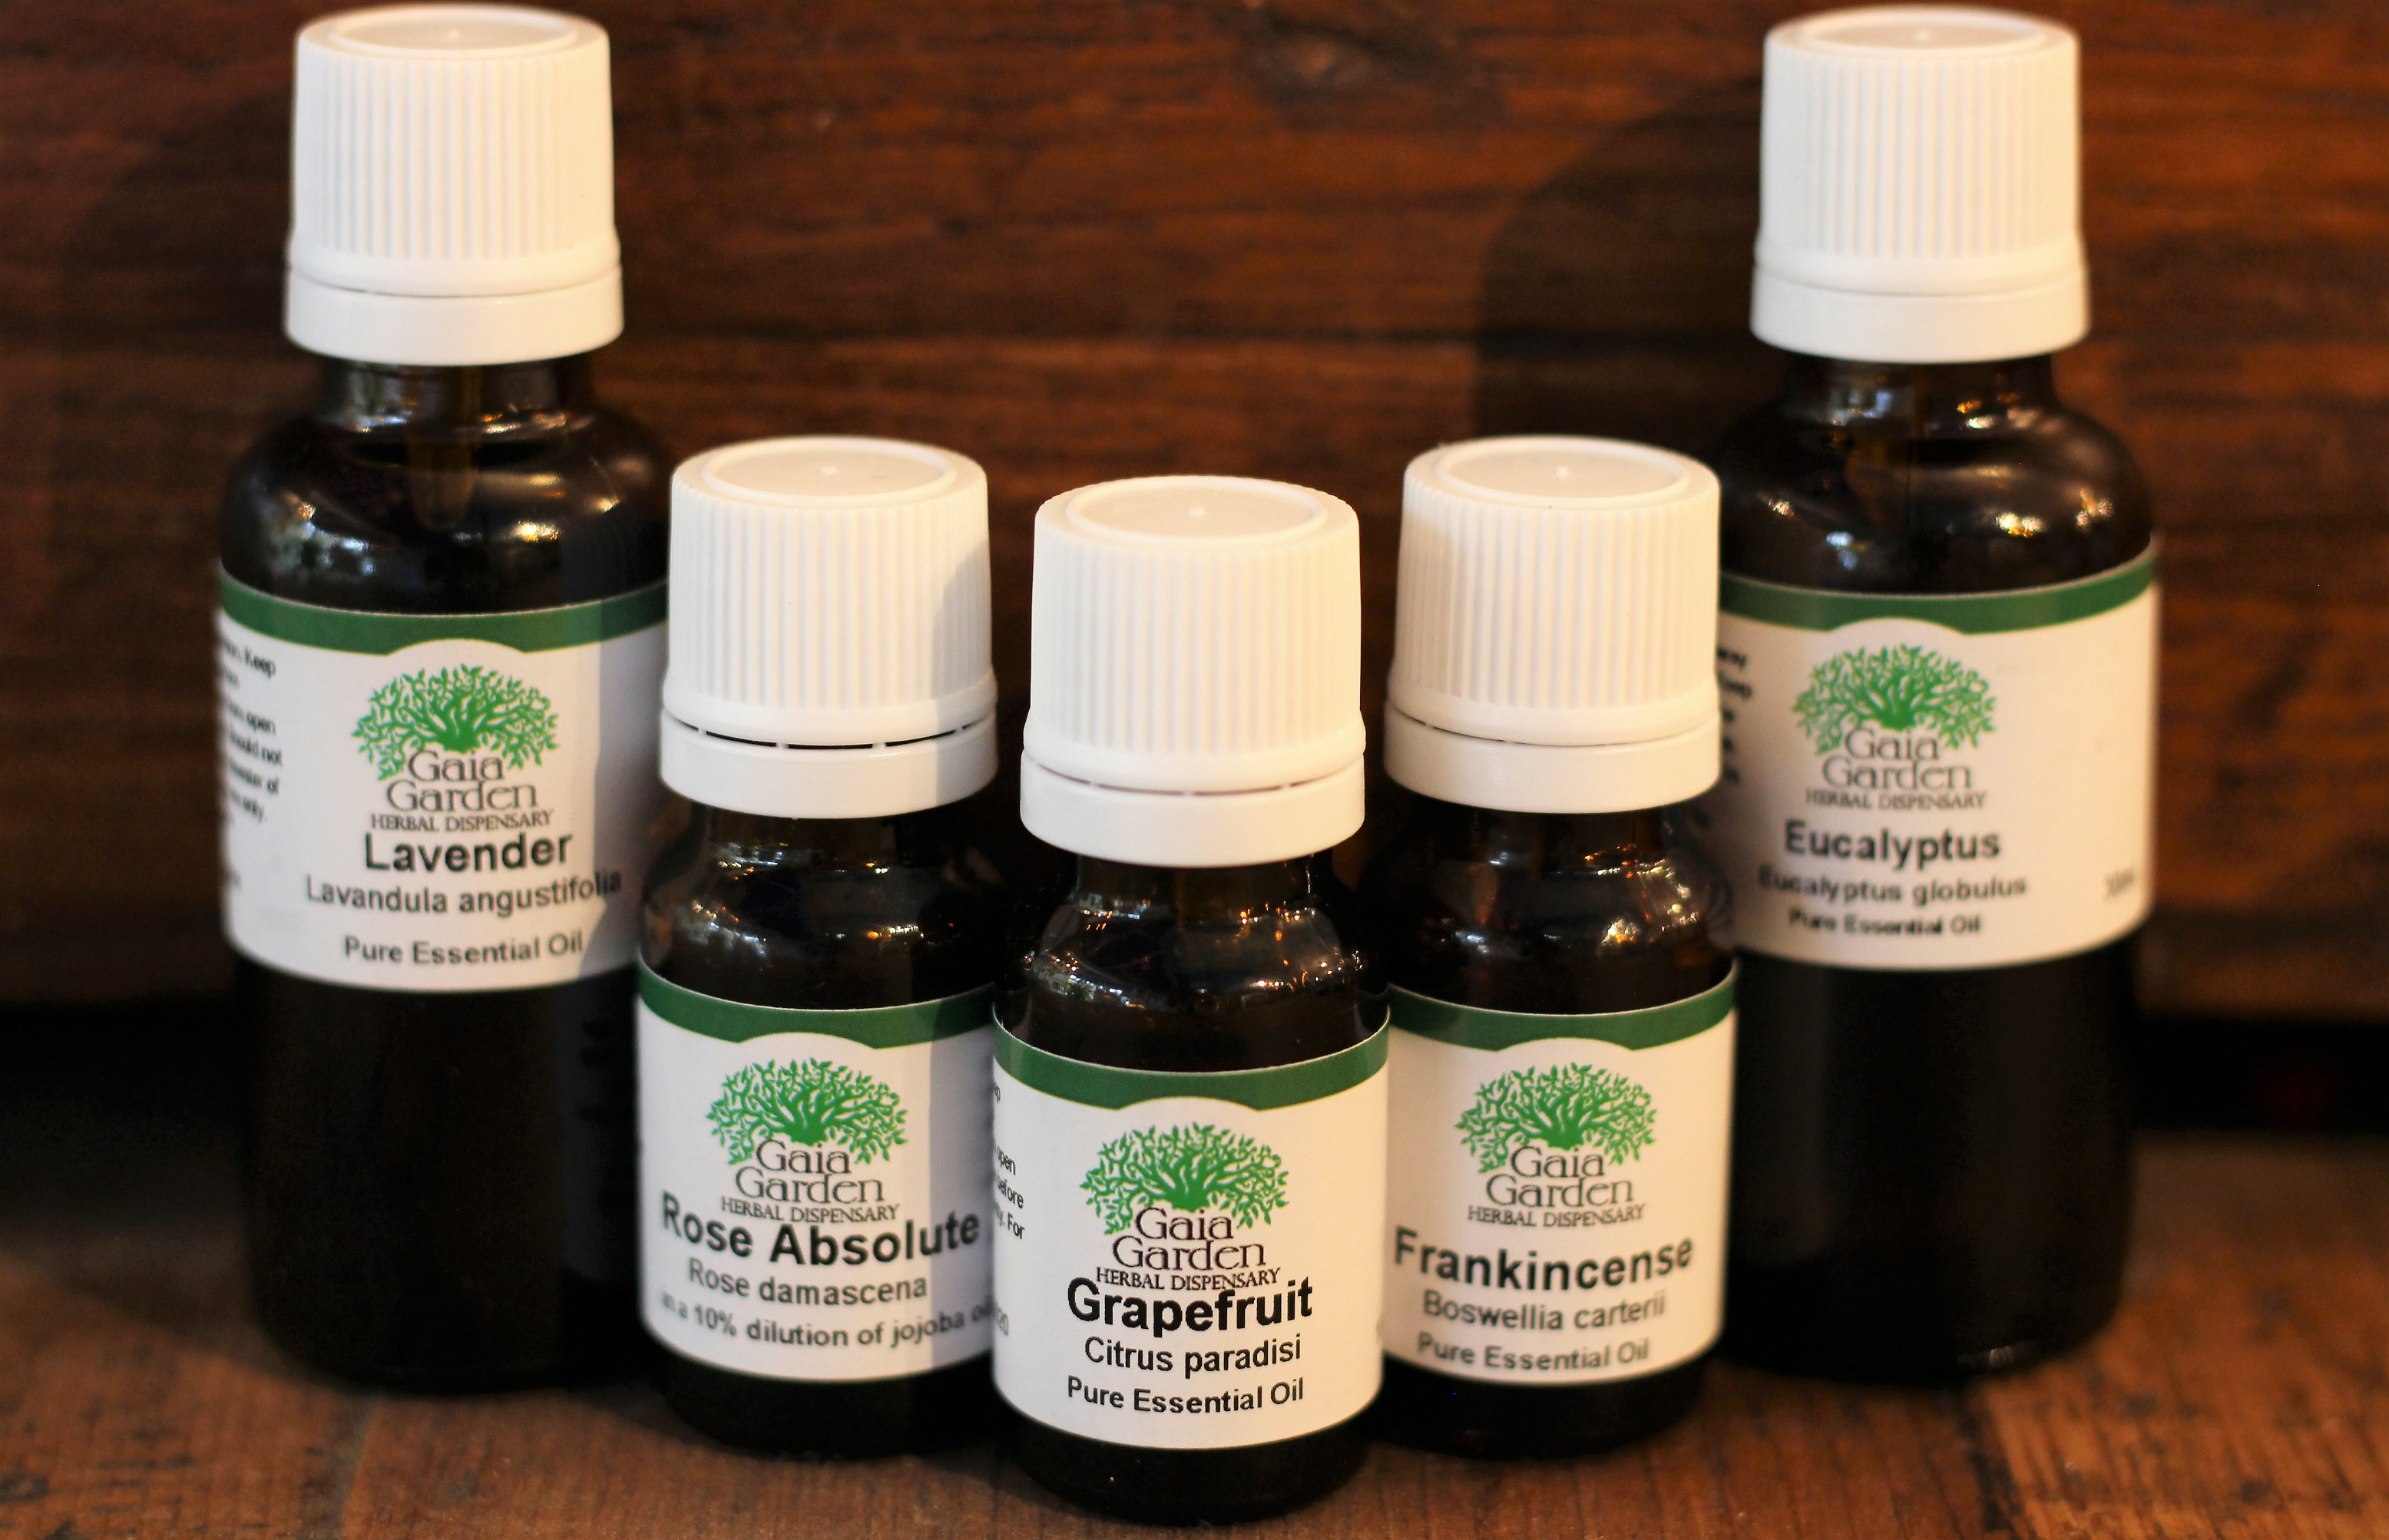 Black Spruce - Essential Oil (Picea mariana)